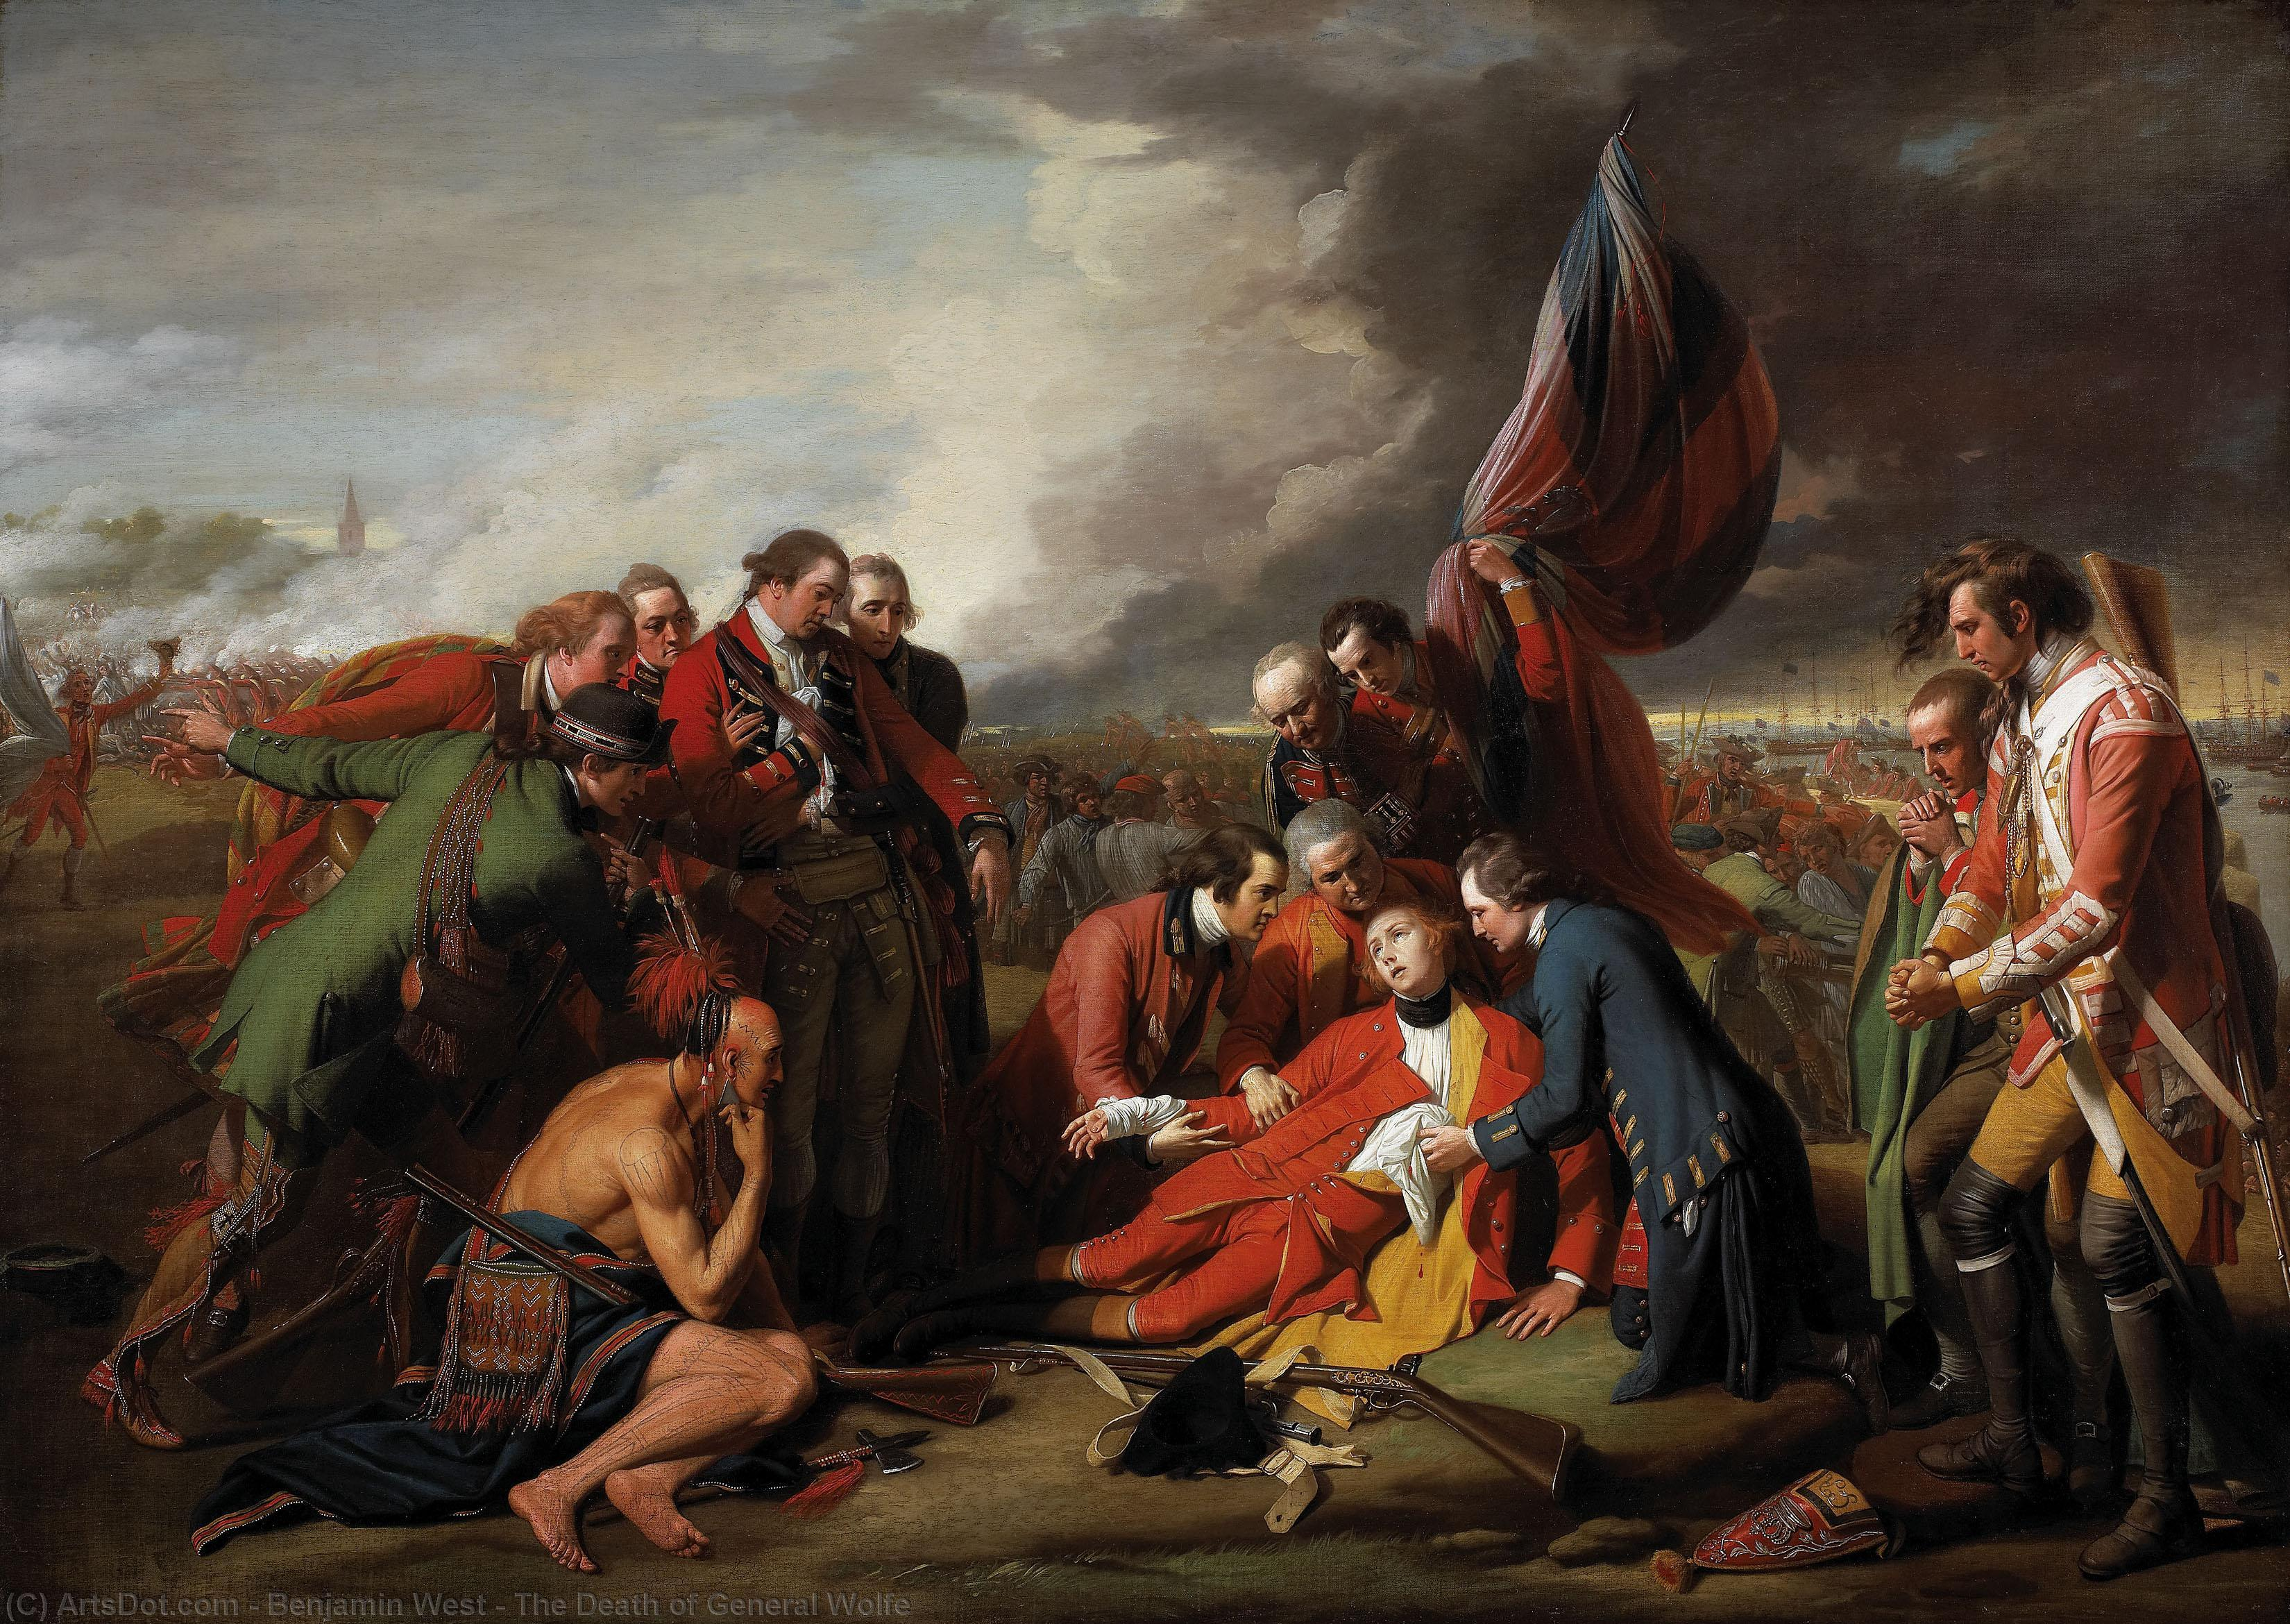 Wikioo.org - The Encyclopedia of Fine Arts - Painting, Artwork by Benjamin West - The Death of General Wolfe